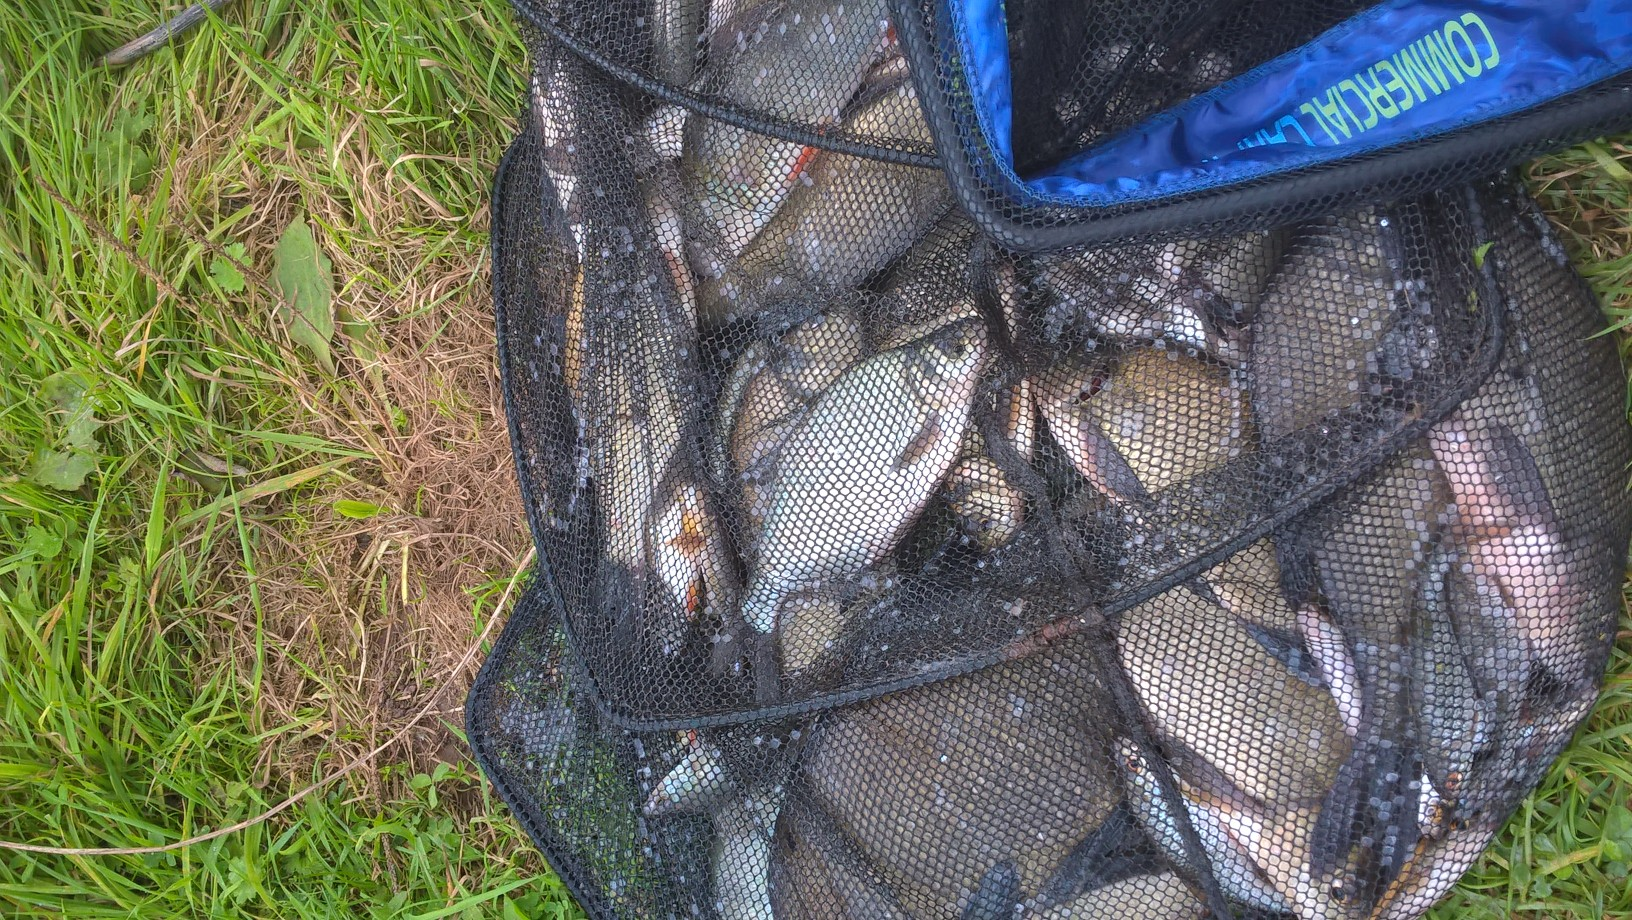 A net of bream roach and perch caught by Christopher Heames on 24/09/16